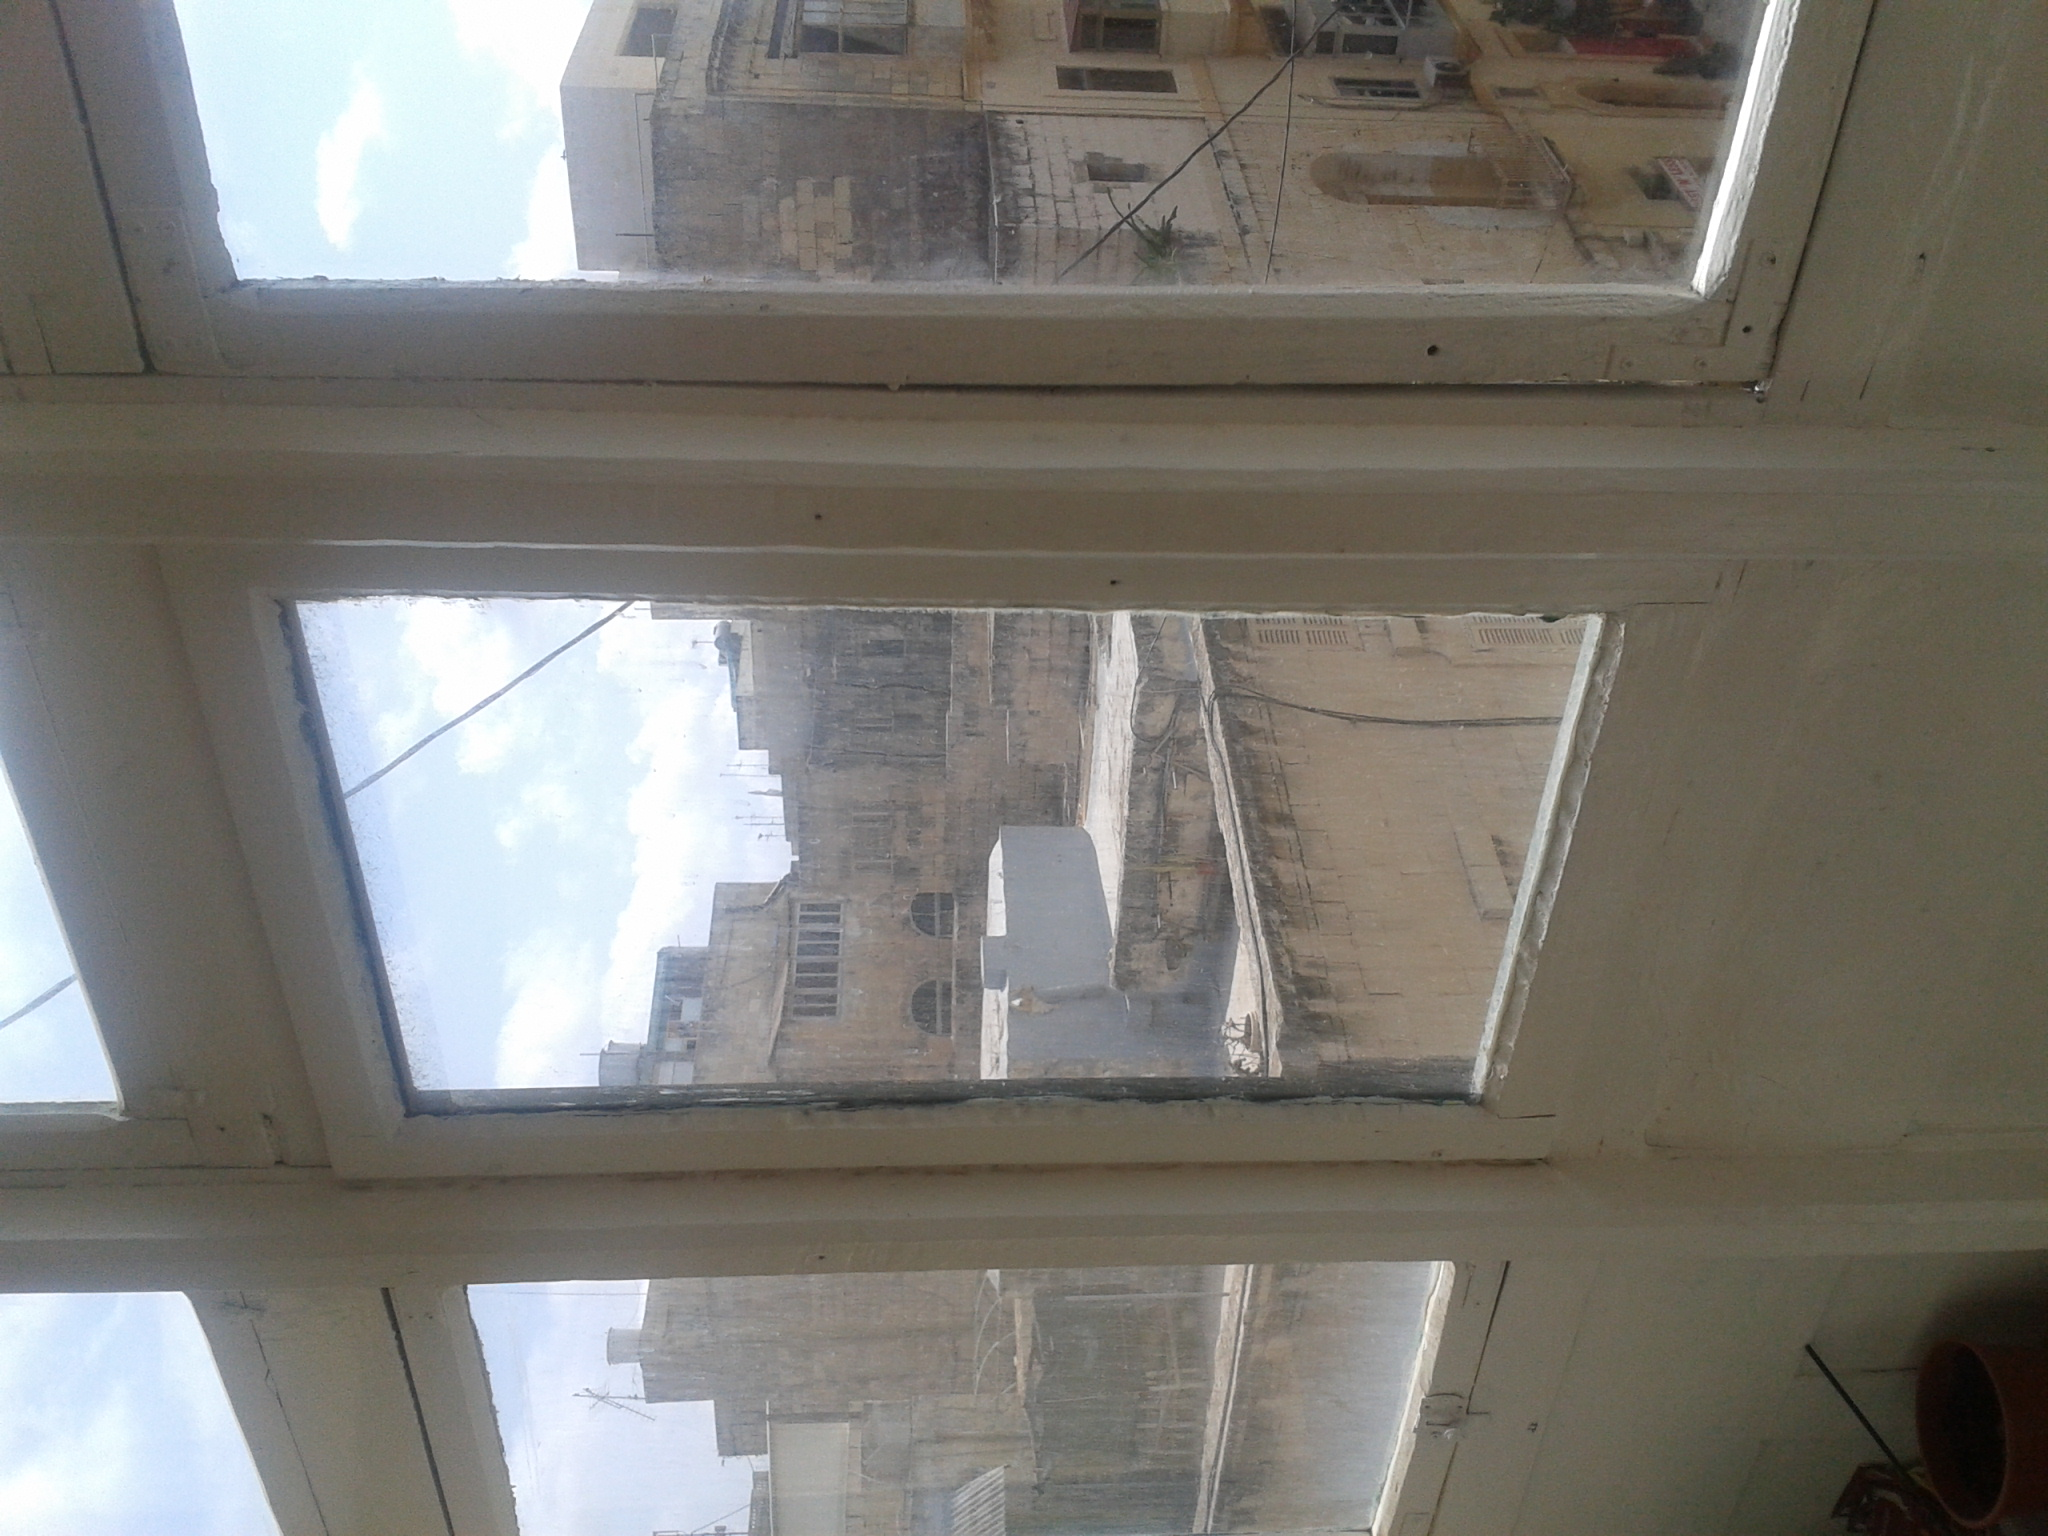 Restauration of the balconies: To be on the safe side, most windows are actually nailed to the frame, no risk of hyper-ventilating here...